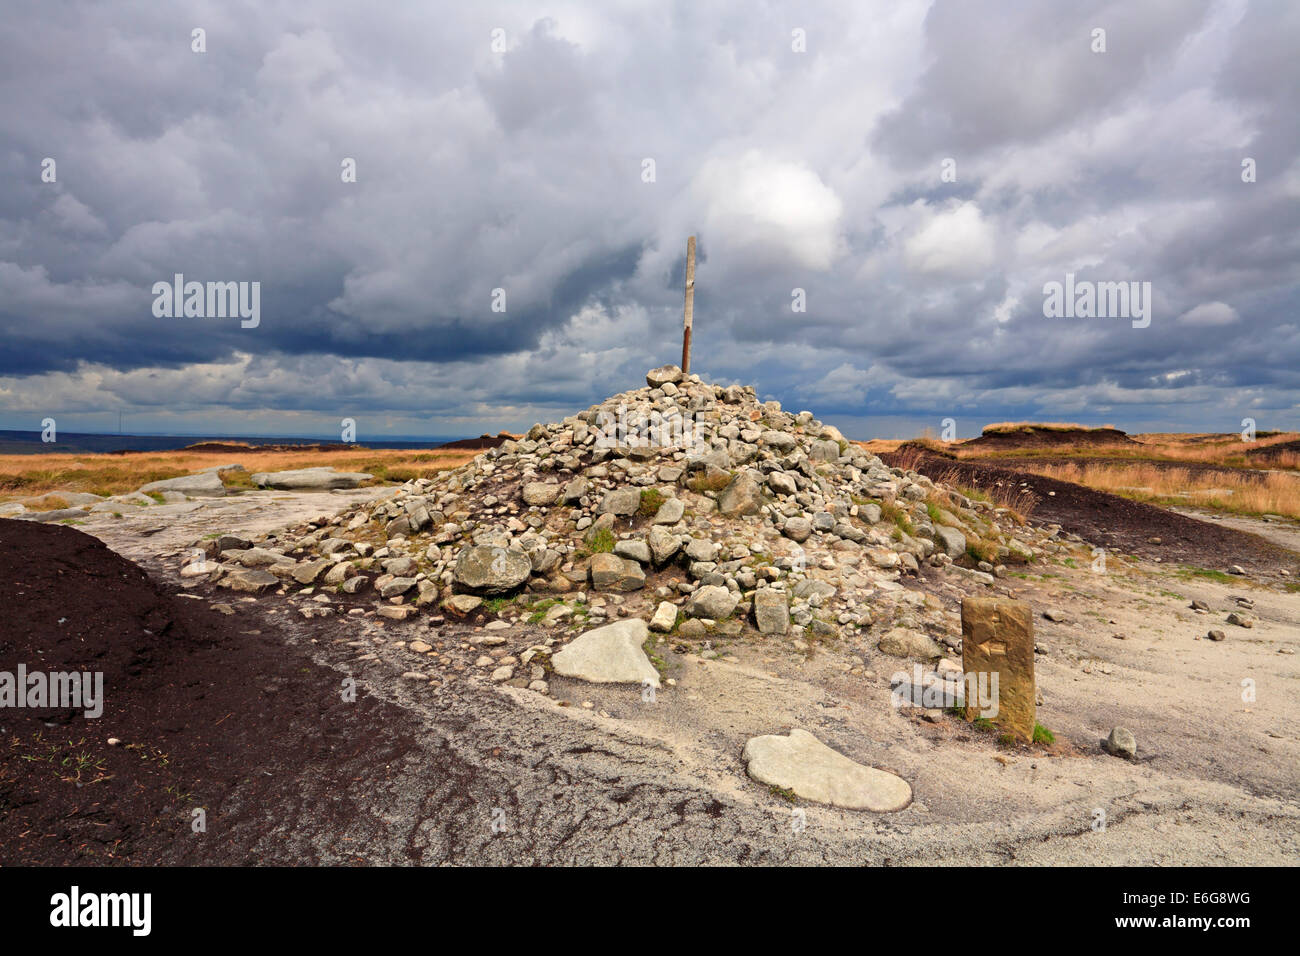 Pennine Way Cairn and Post at Bleaklow Head, Bleaklow, Derbyshire, Peak District National Park, England, UK. - Stock Image